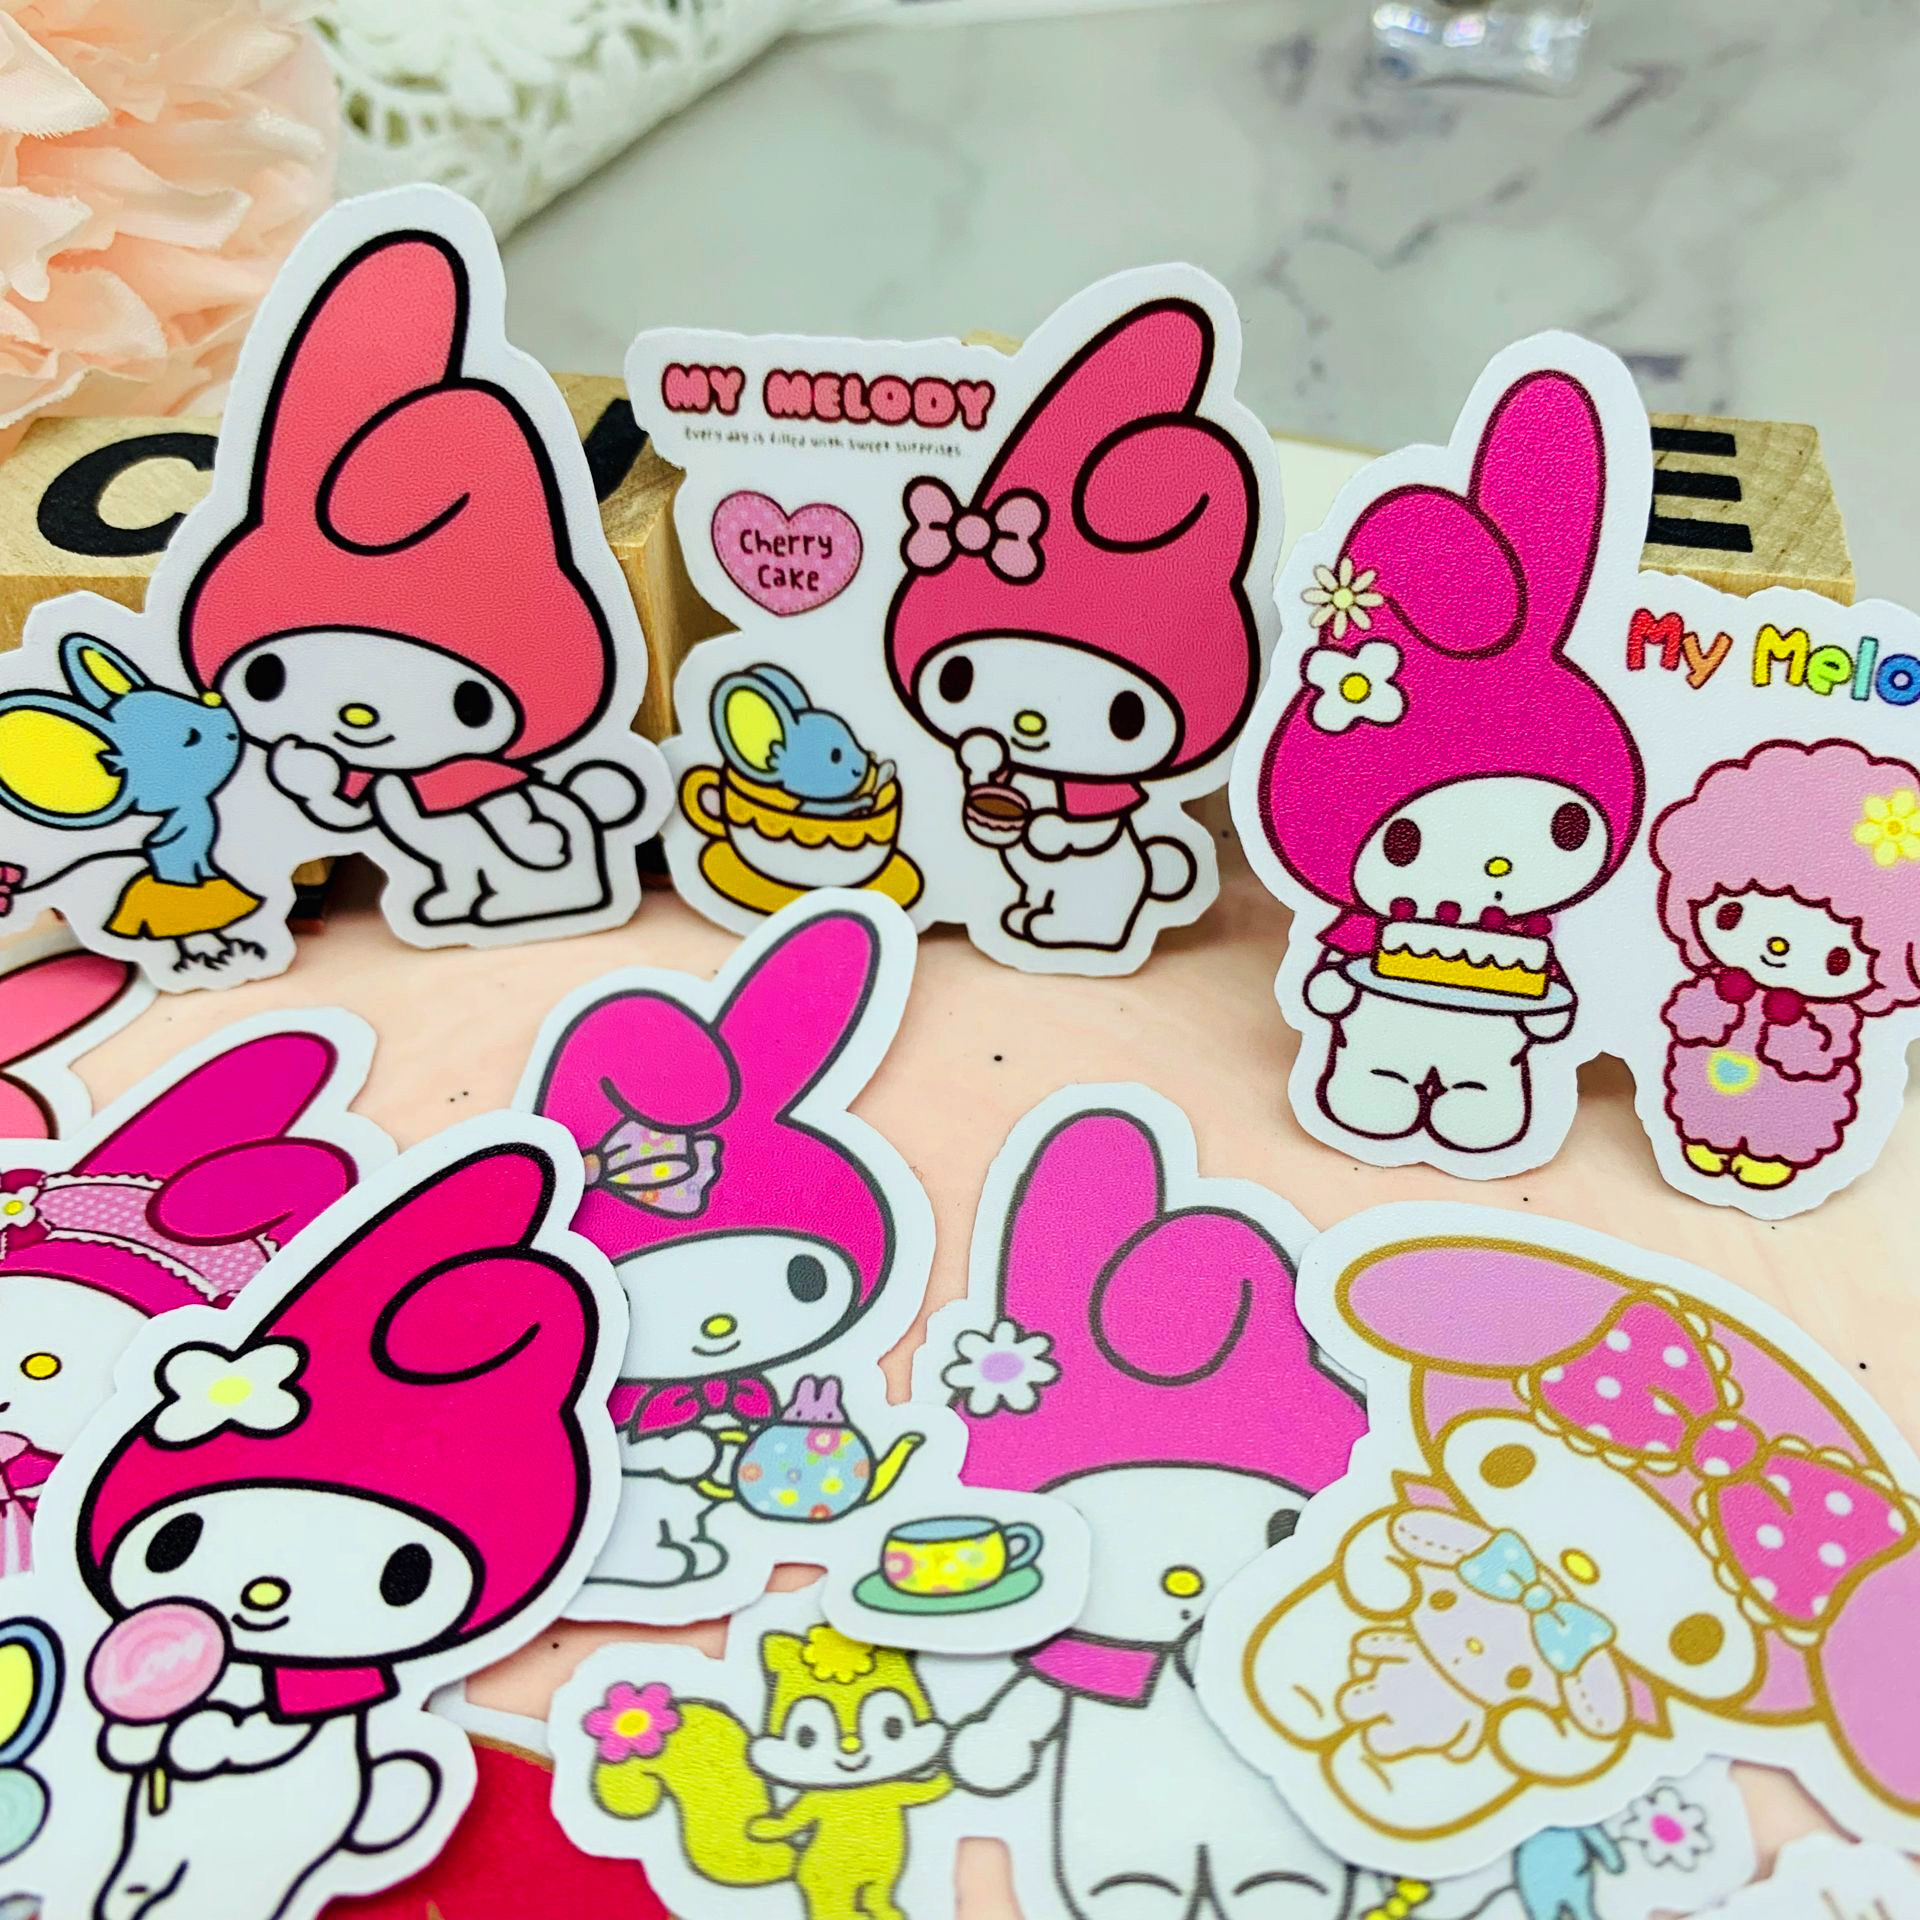 22 Pcs Cute Stationery Sticker Retro Kawaii Sticker Child Sticker DIY Diary Clip Art Photo